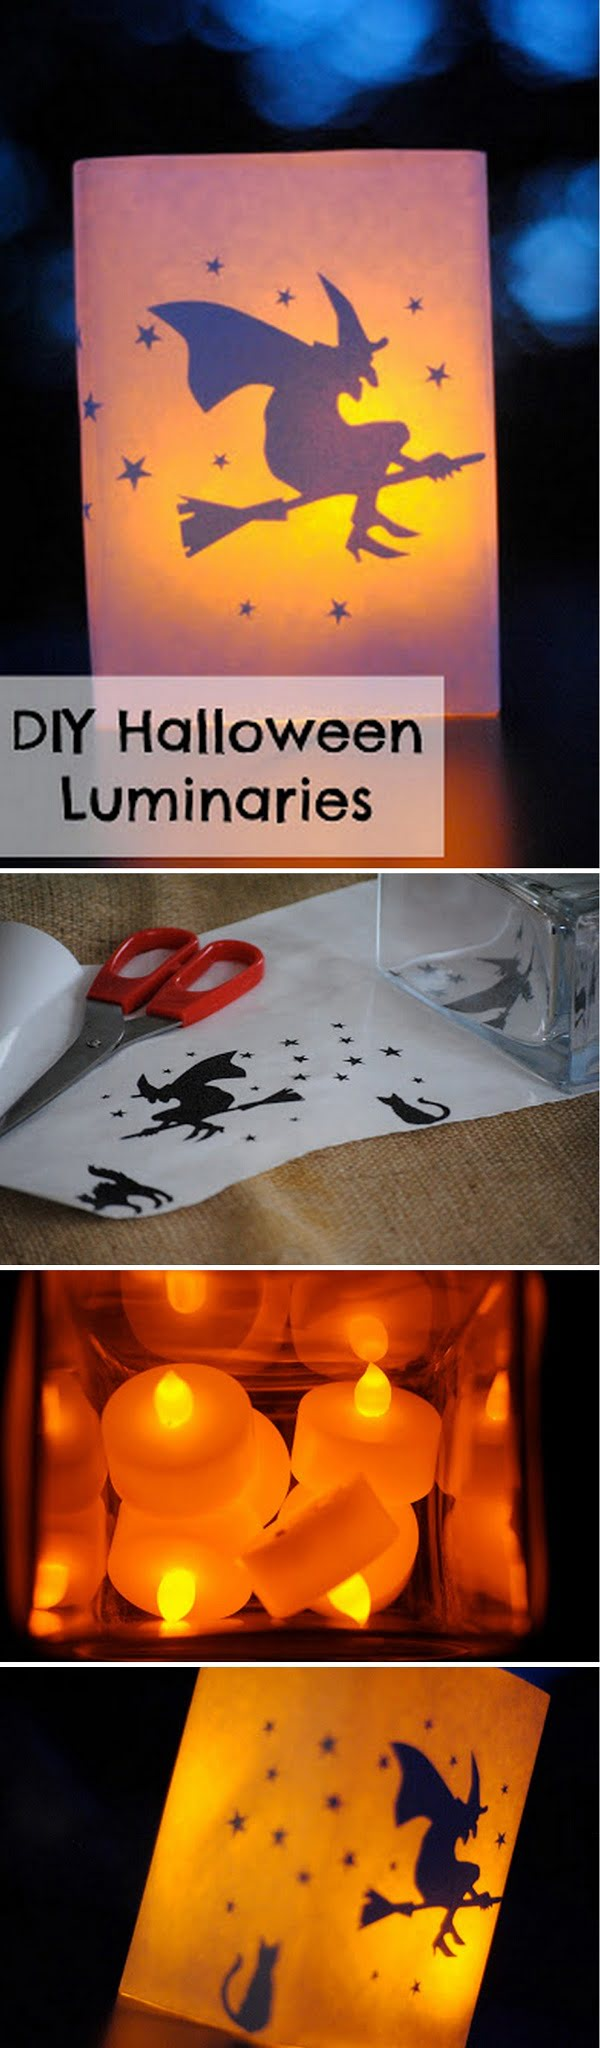 Check out the tutorial on how to make #DIY luminaries for #Halloween home decoration #homedecor